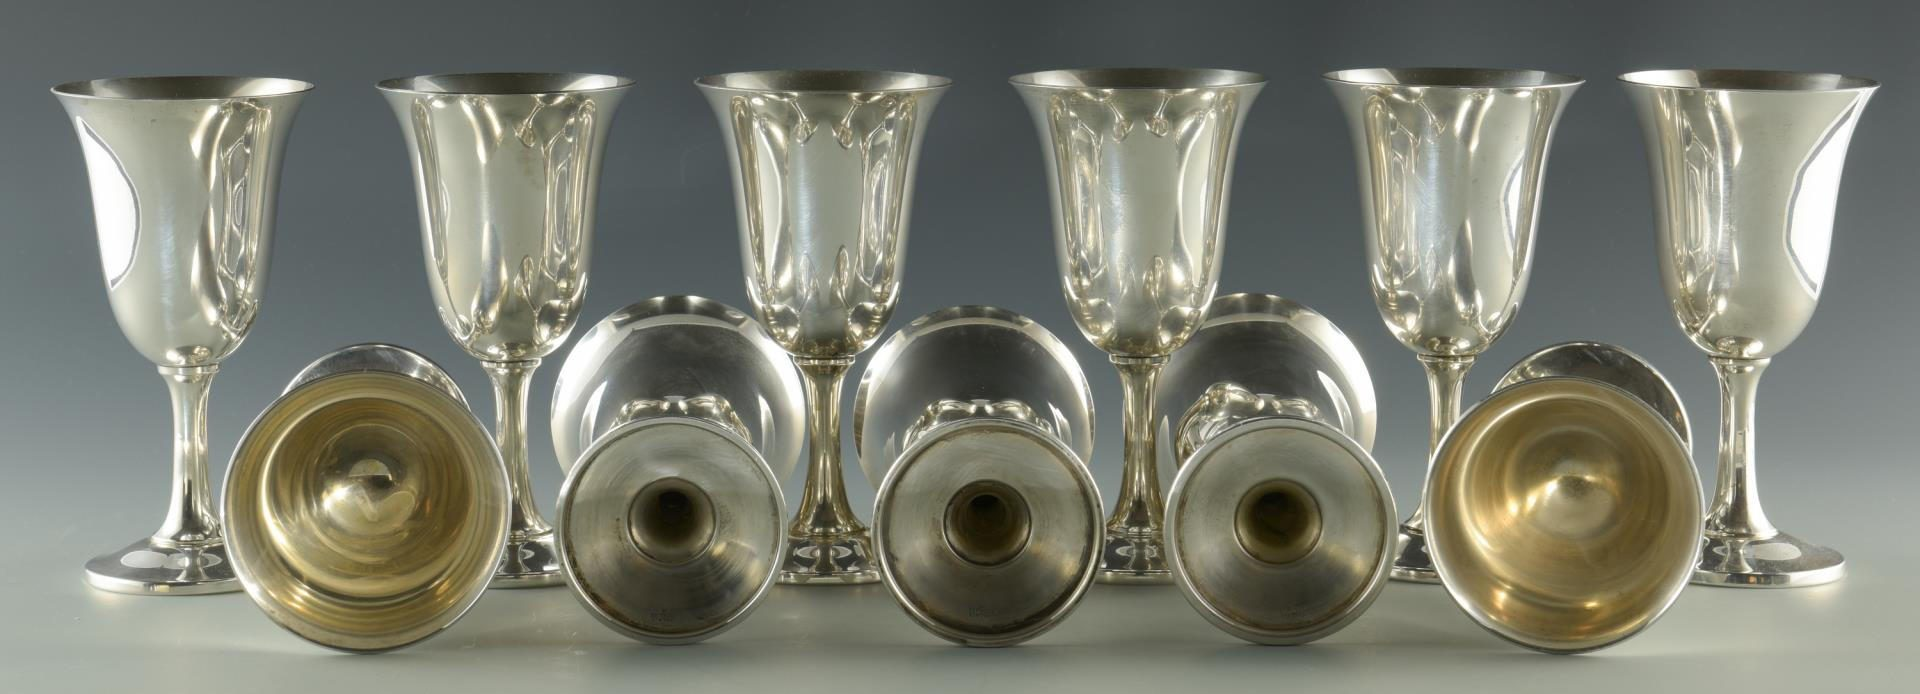 Lot 1: 12 Wallace Sterling Silver Goblets